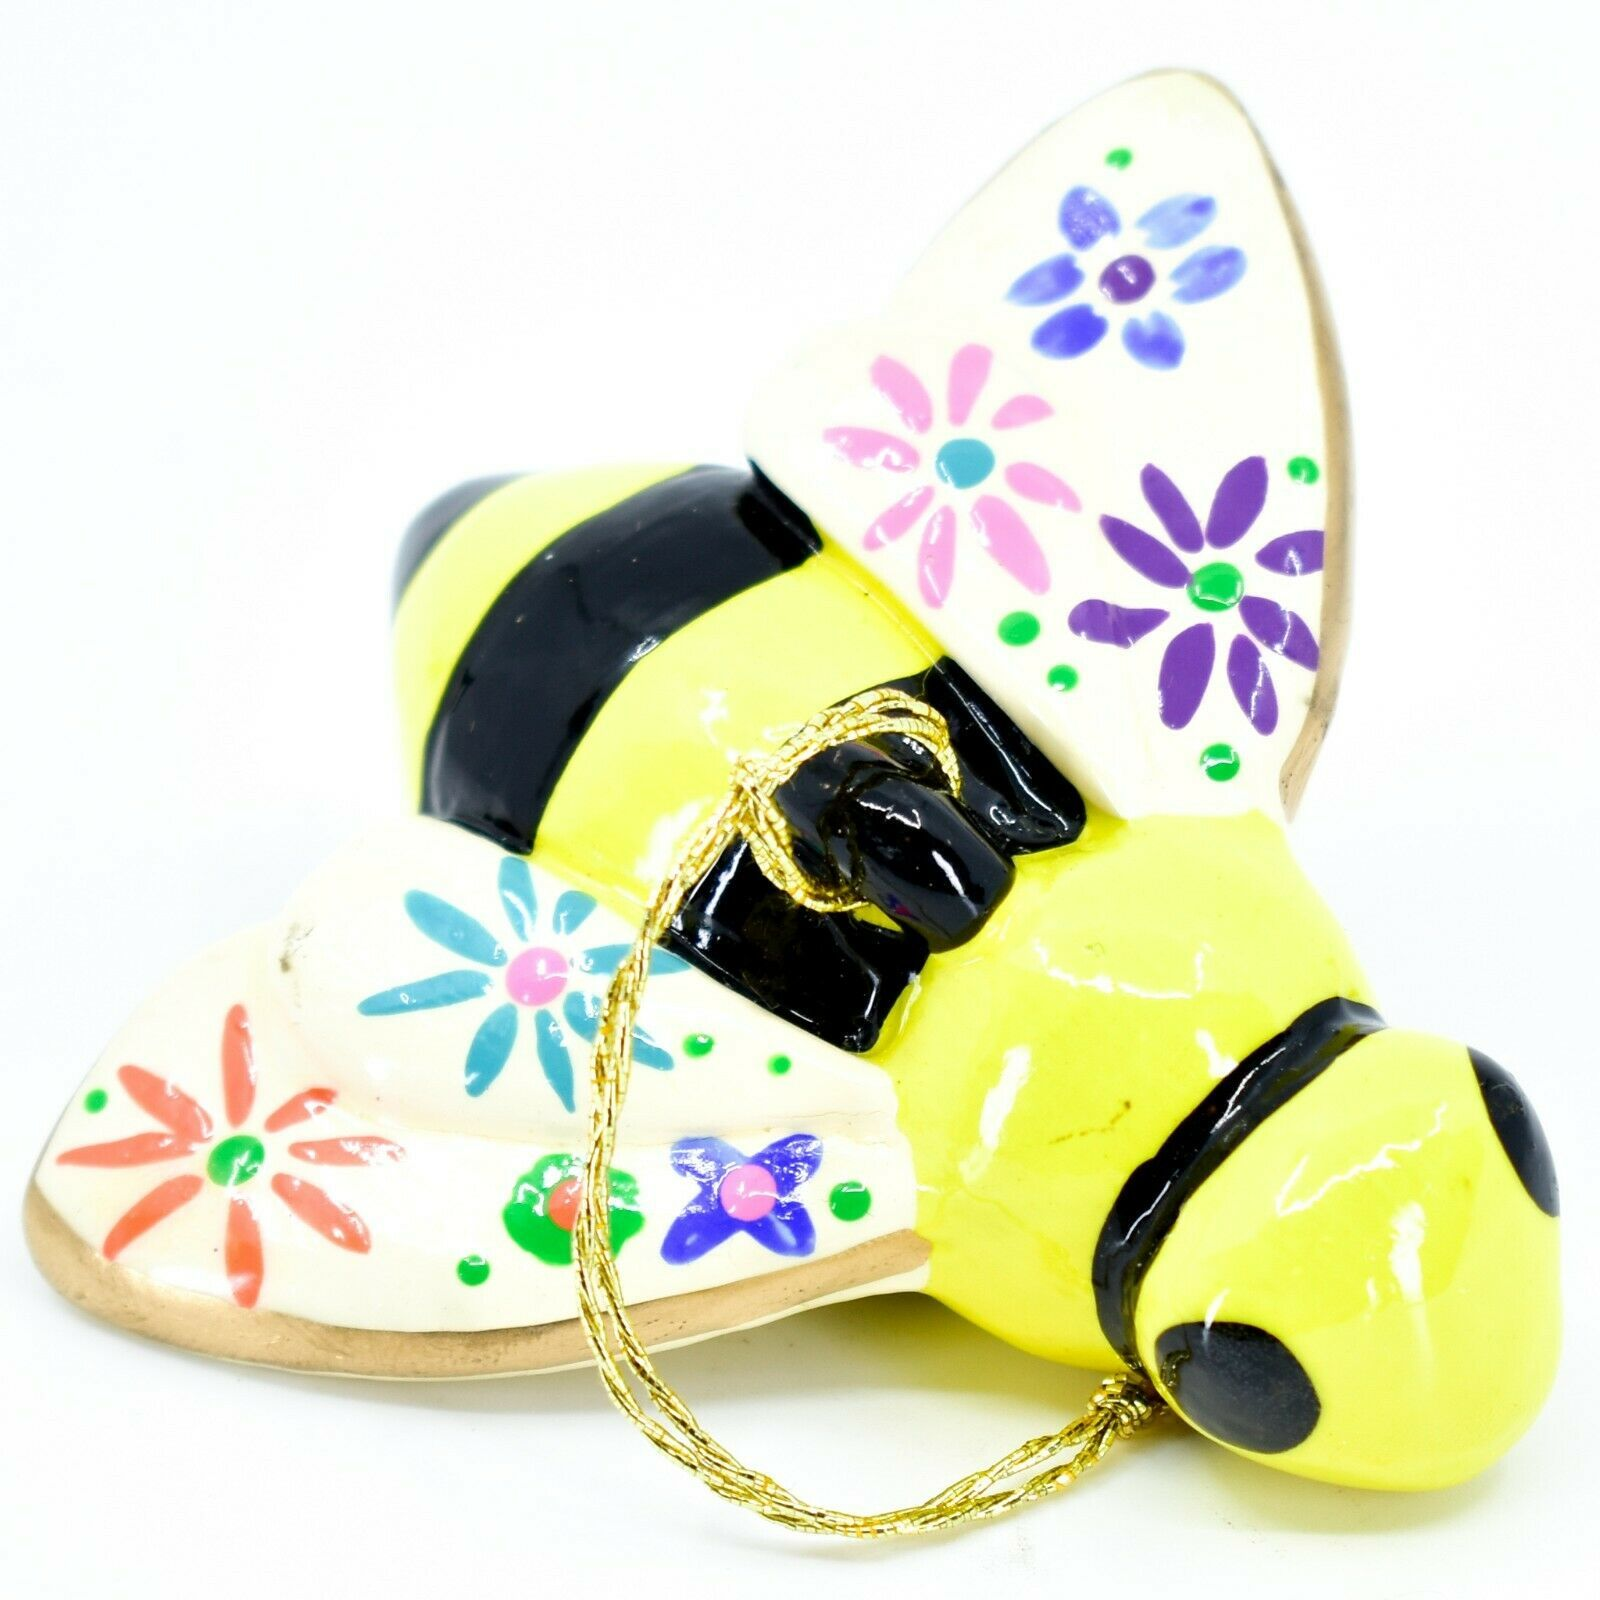 Handcrafted Painted Ceramic Bumblebee Bee Confetti Ornament Made in Peru